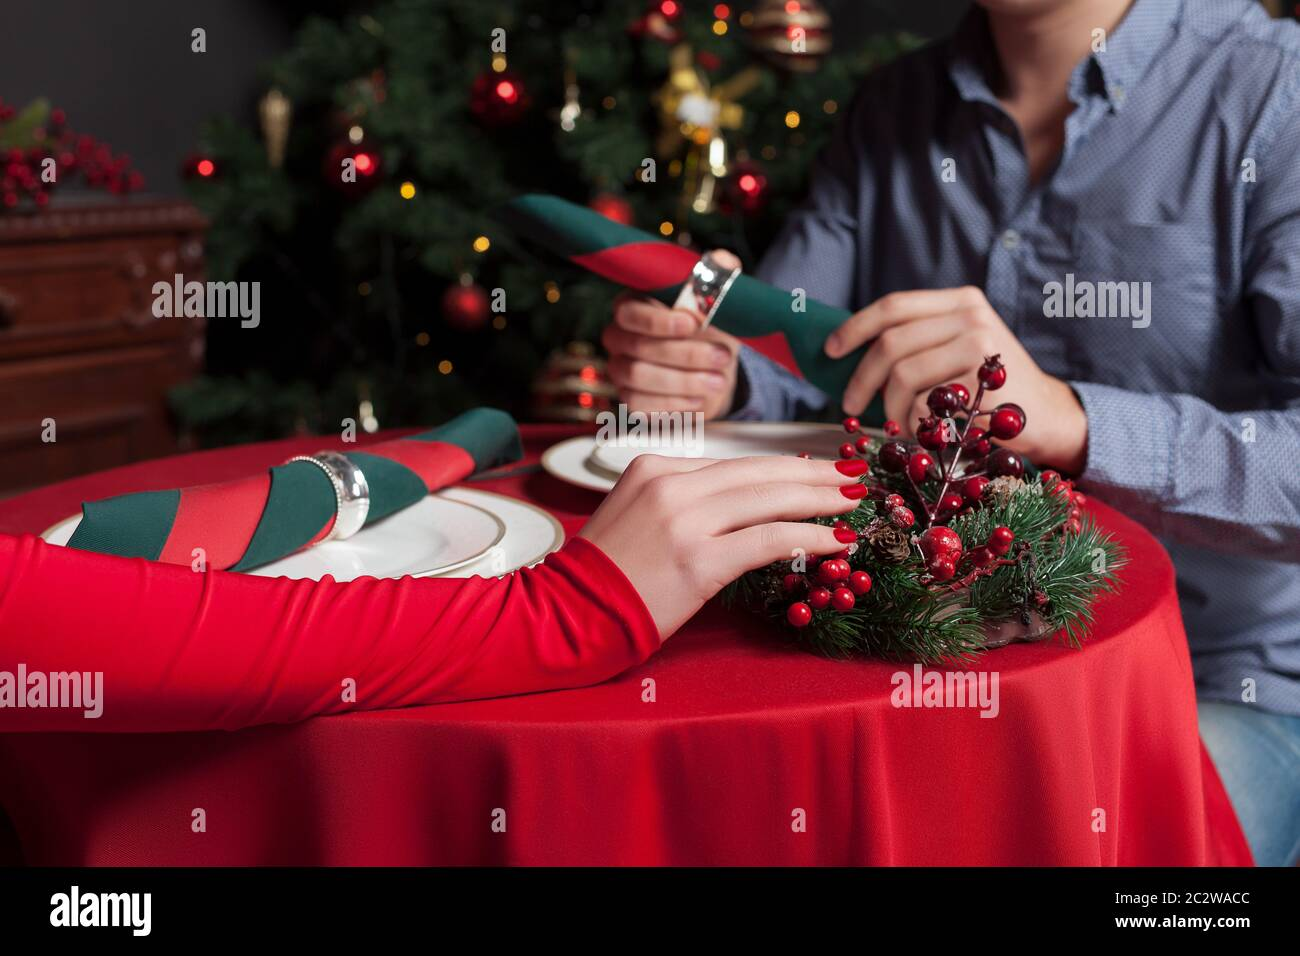 Young Couple Hands On The Table At Luxury Restaurant Closeup Romantic Date Man And Woman In Love Stock Photo Alamy